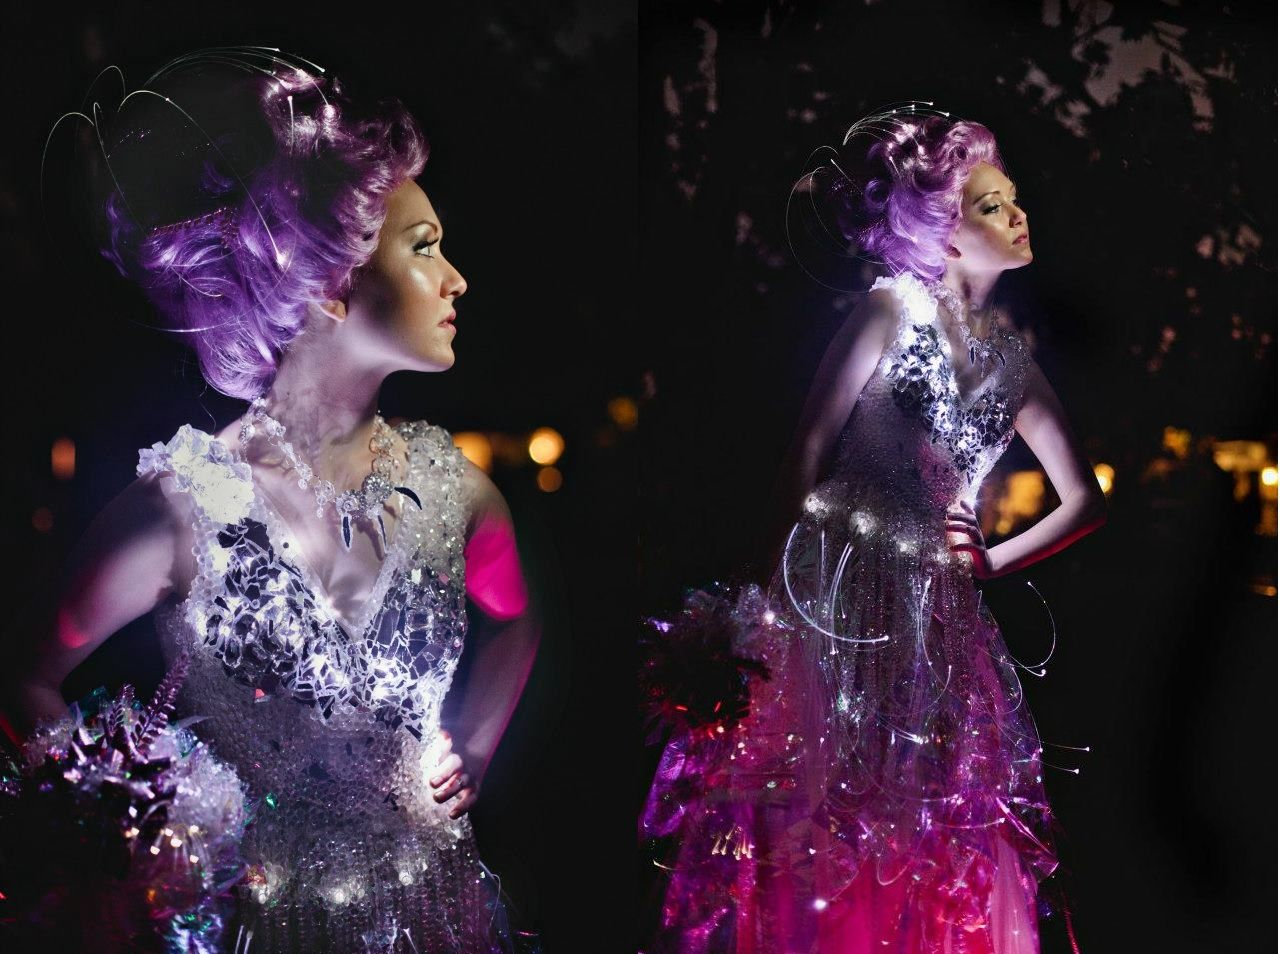 Crystal and Fiber Optic Light Up Wedding Dress by Evey www ...